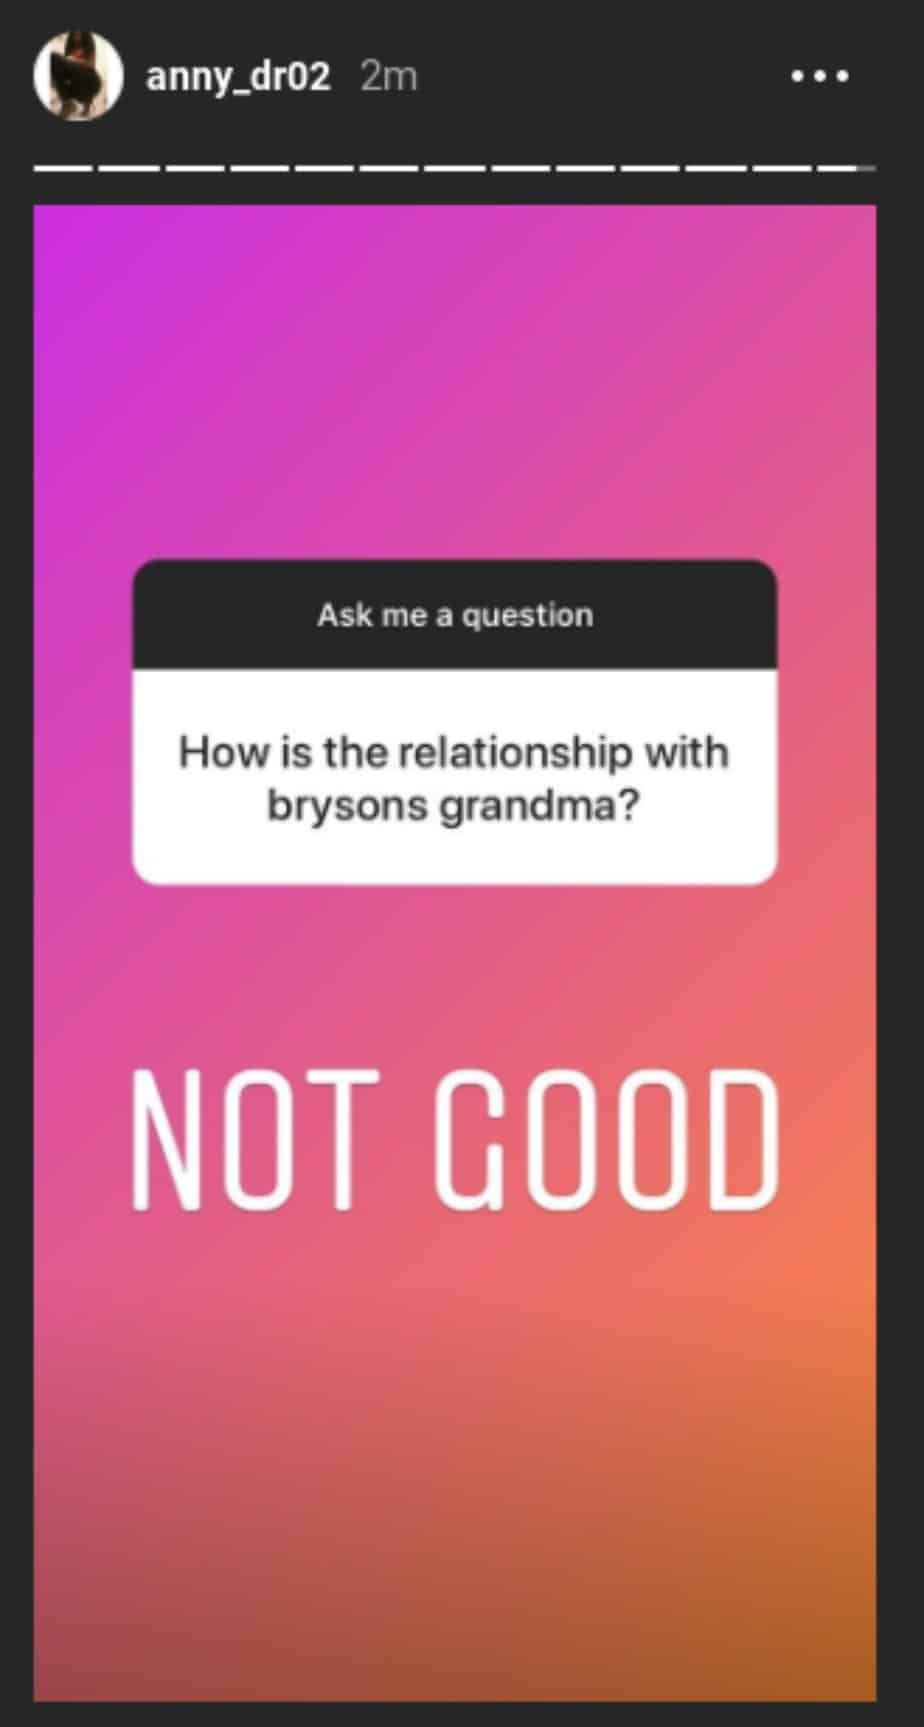 "Anny says her relationship with Bryson's grandma is ""not good'"